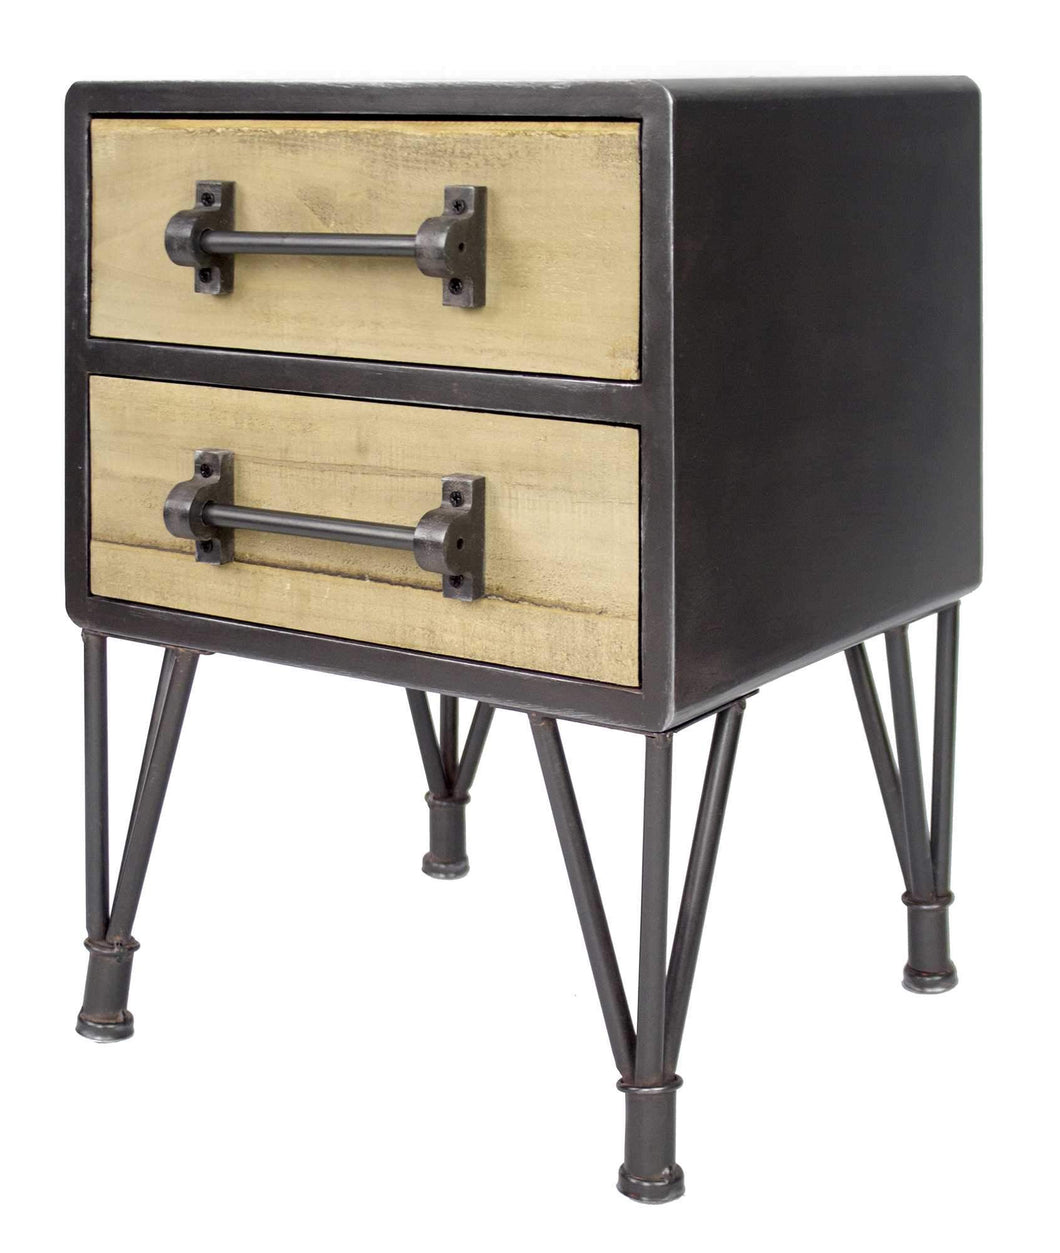 2-Drawer End Table/Nightstand - Charcoal And Natural Wood